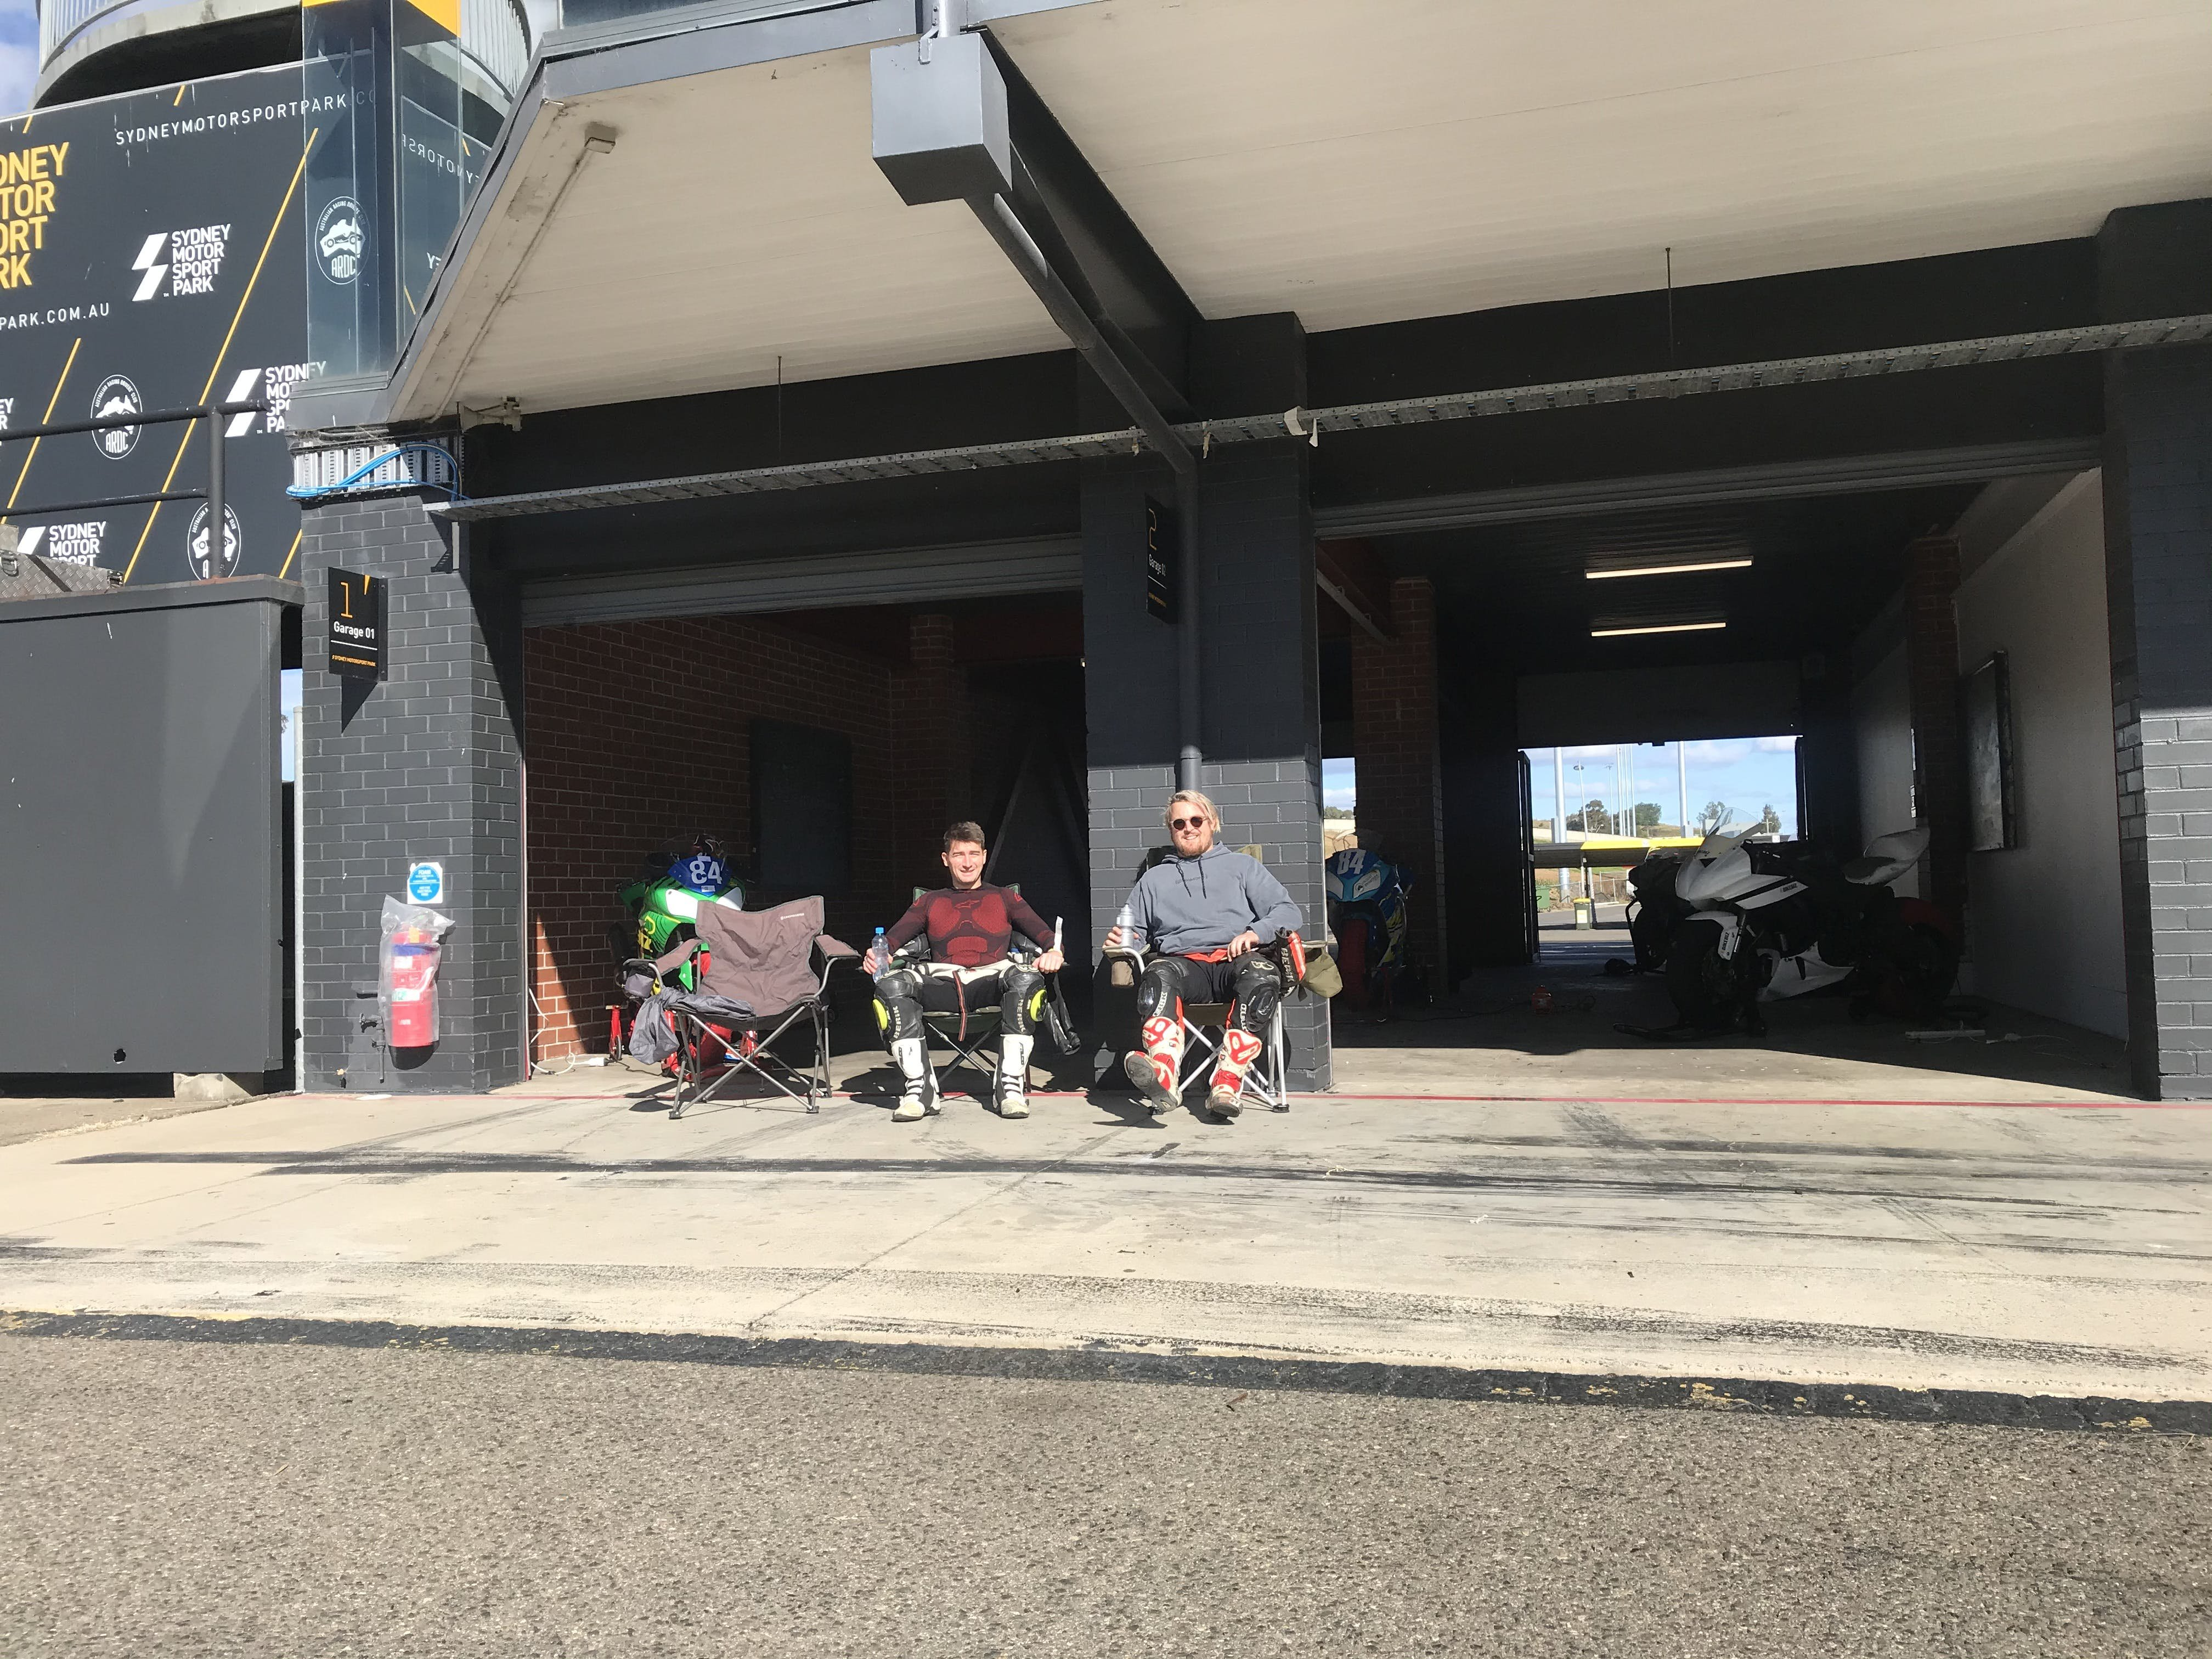 2 guys sitting in chairs in the sun at SMSP